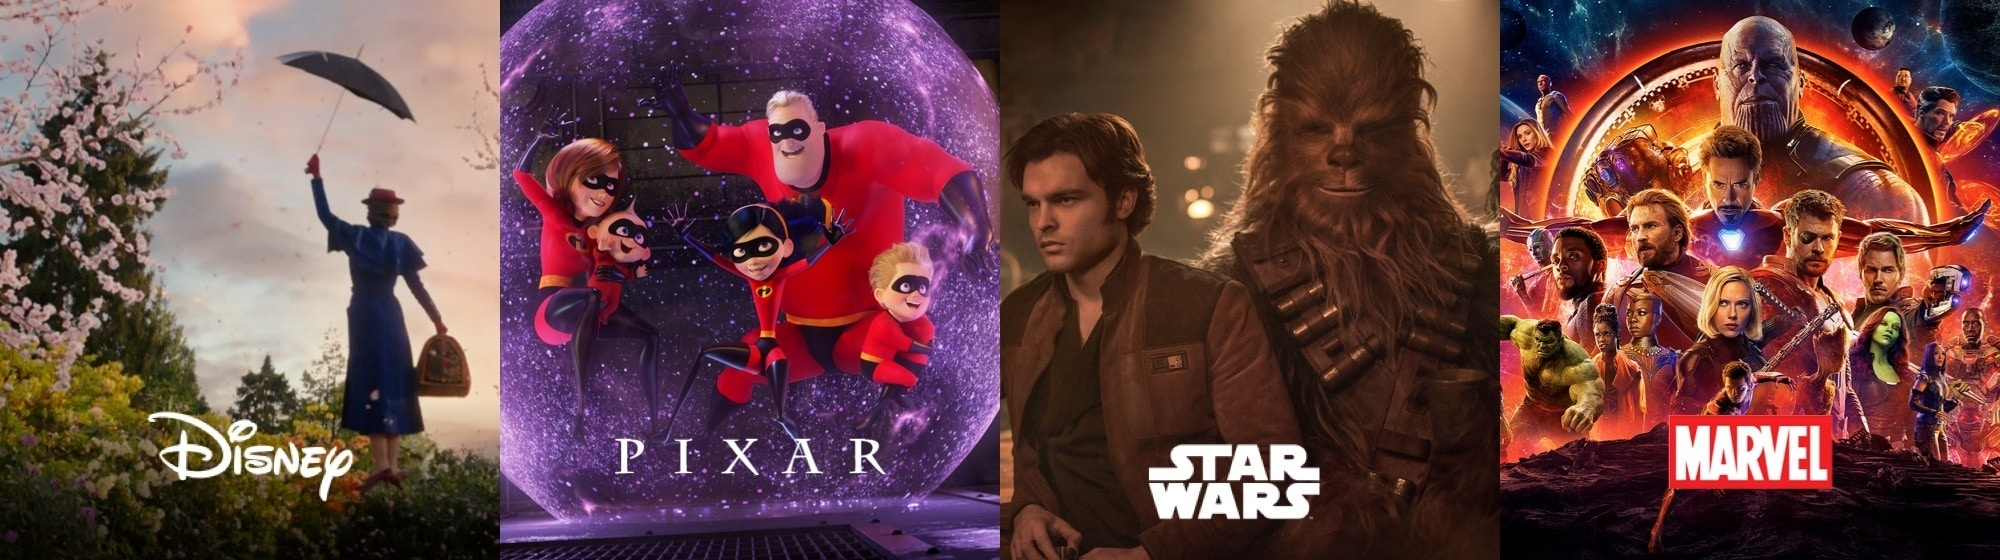 Disney | Pixar | Star Wars | Marvel